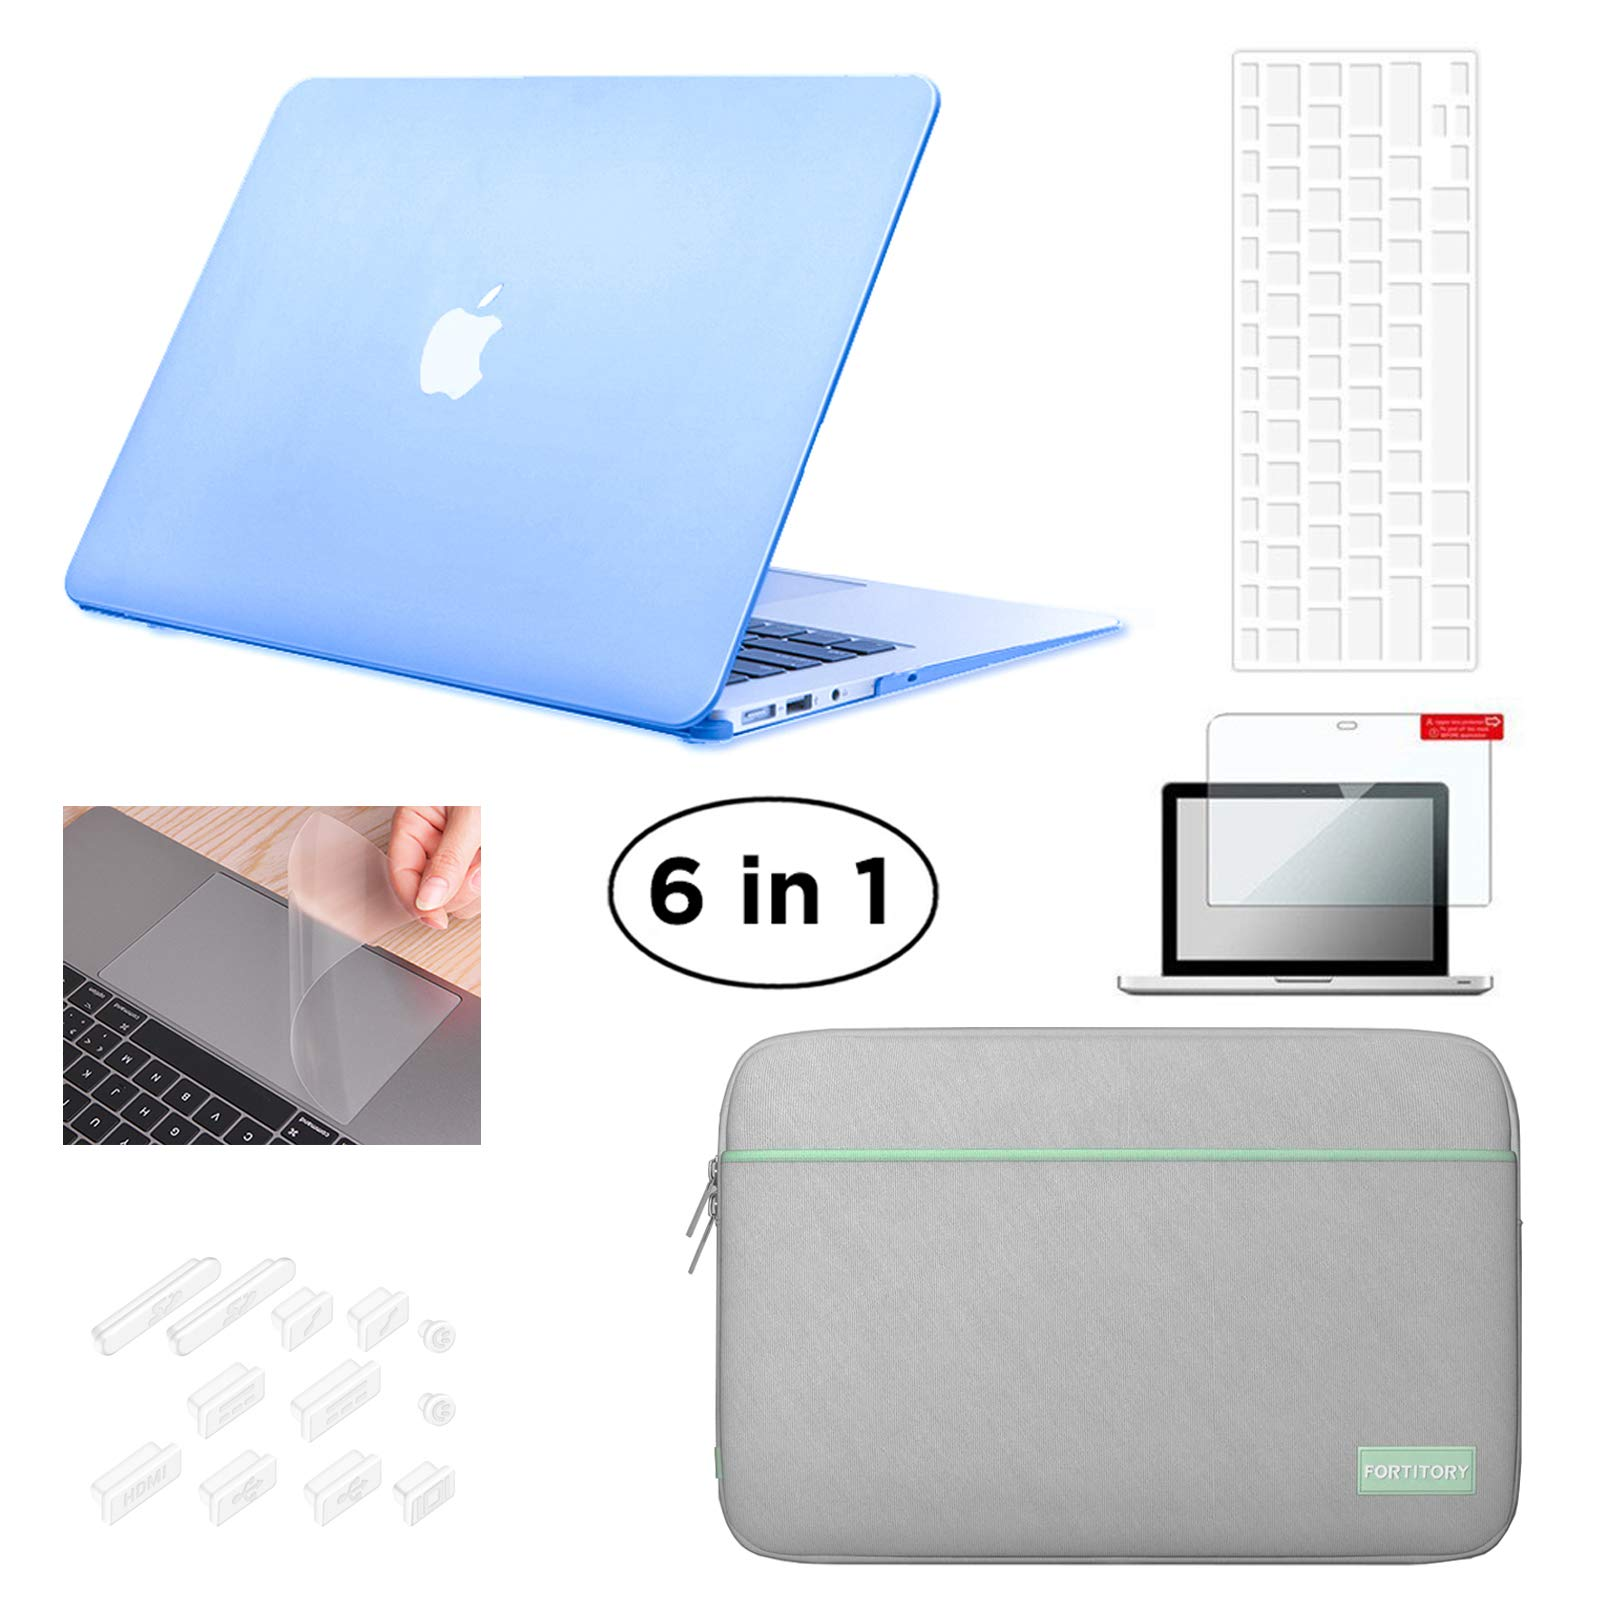 Fortitory MacBook Air 13'' A1369/A1466 Plastic Hardshell Case & Water-resistant Sleeve 6 in 1 Bundle with Screen Protector, Keyboard Skin, Trackpad Protector and Dust Plug - Airy Blue